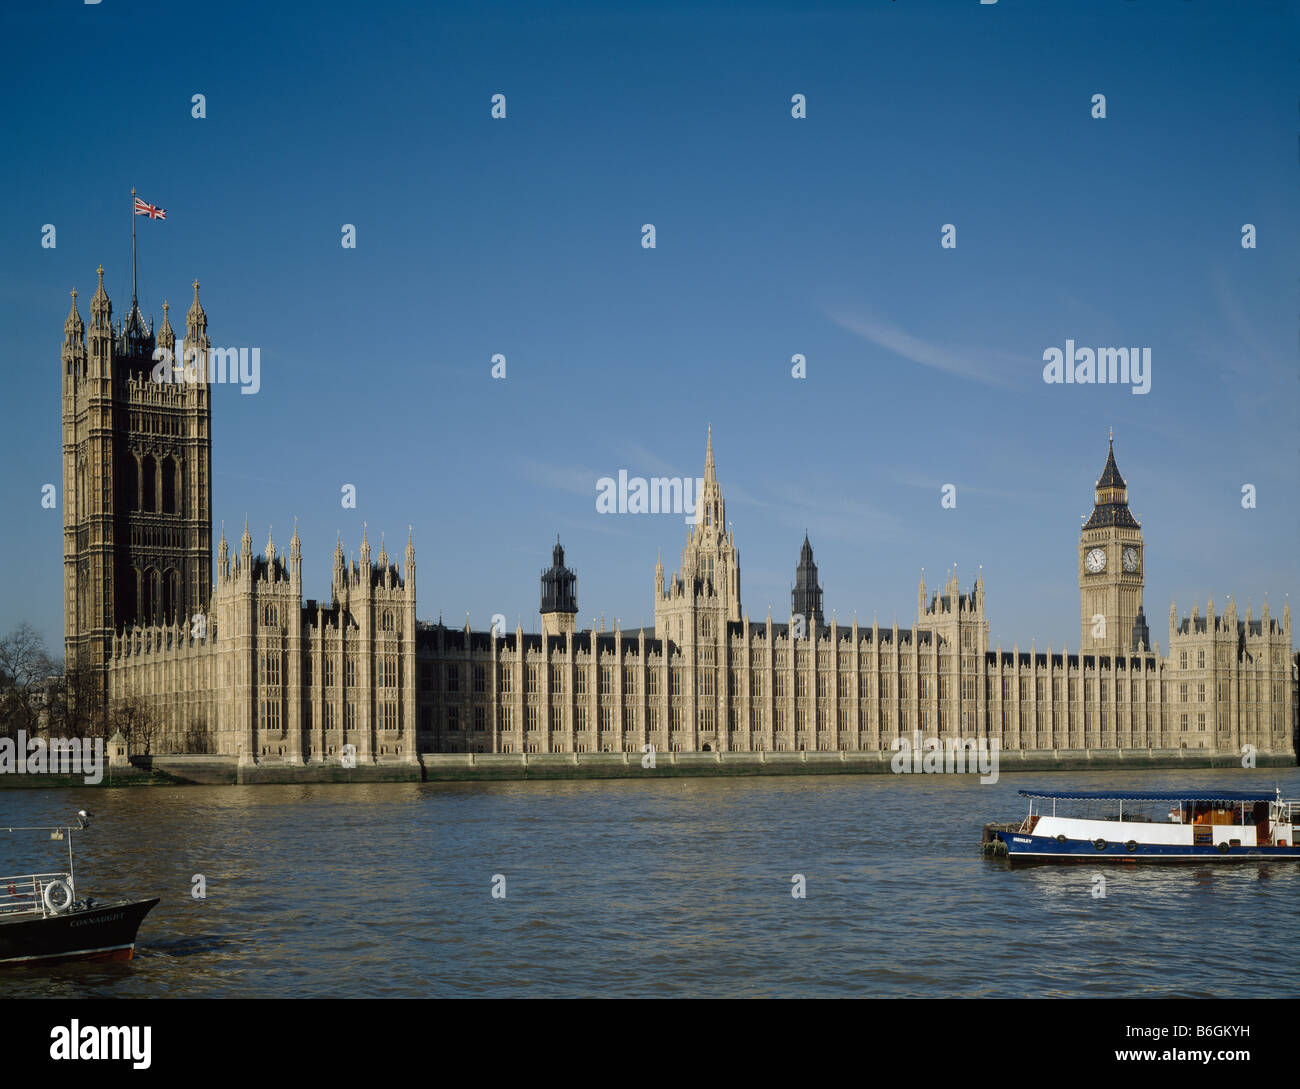 Houses of Parliament Palace of Westminster London Stock Photo